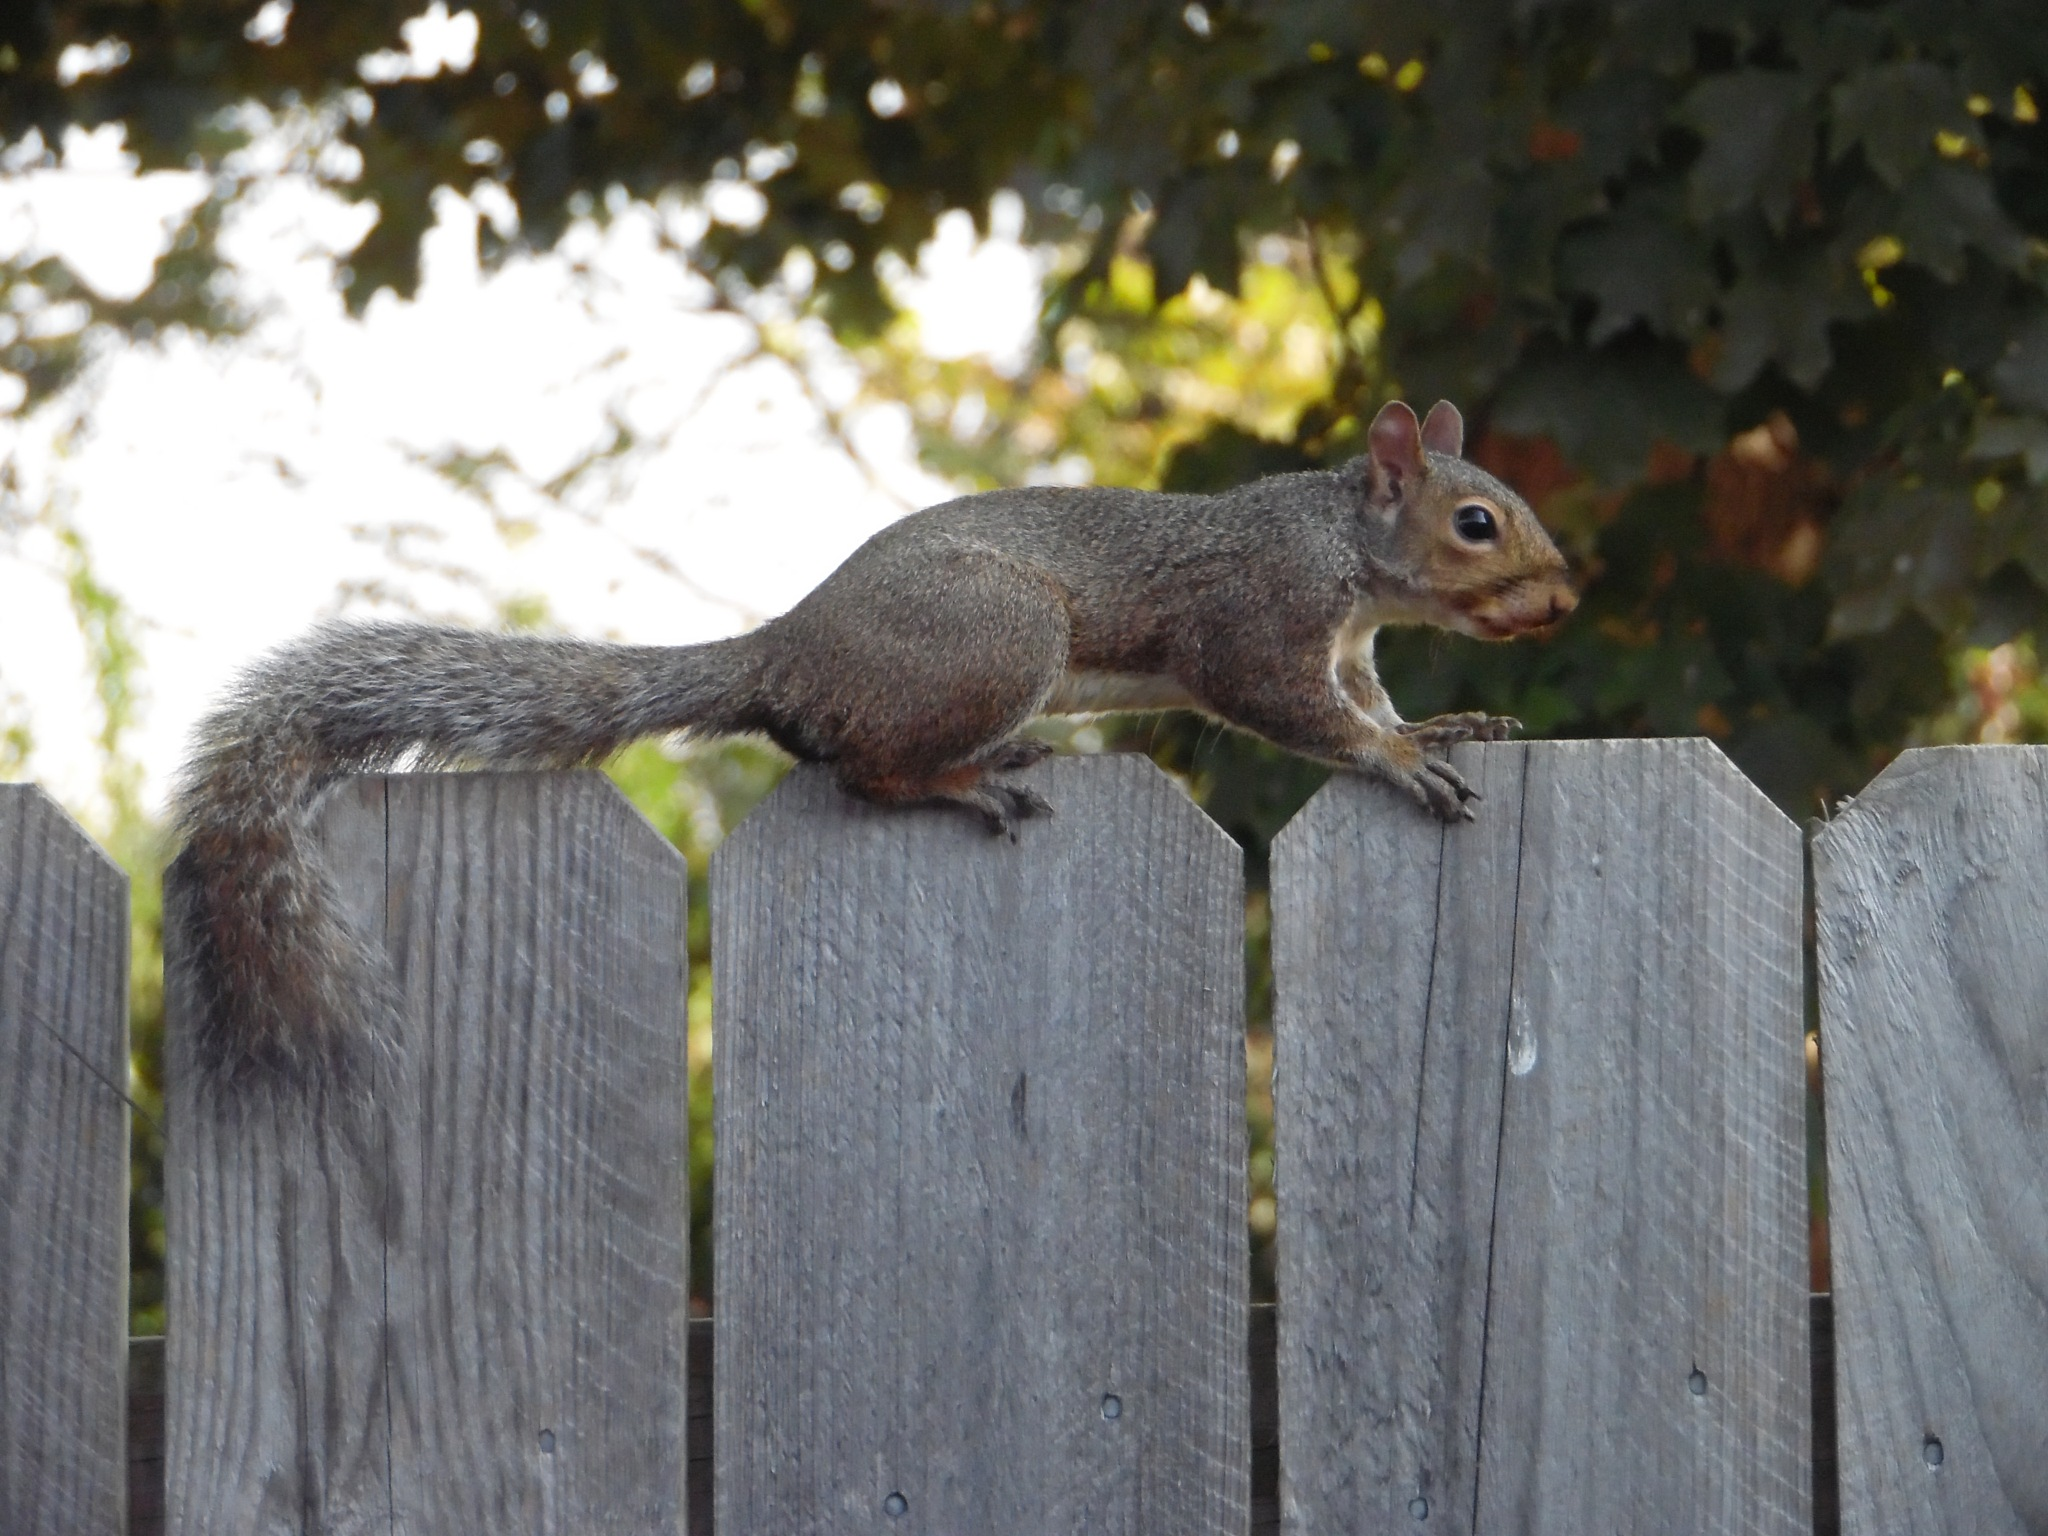 squirrel on the fence by galepiper